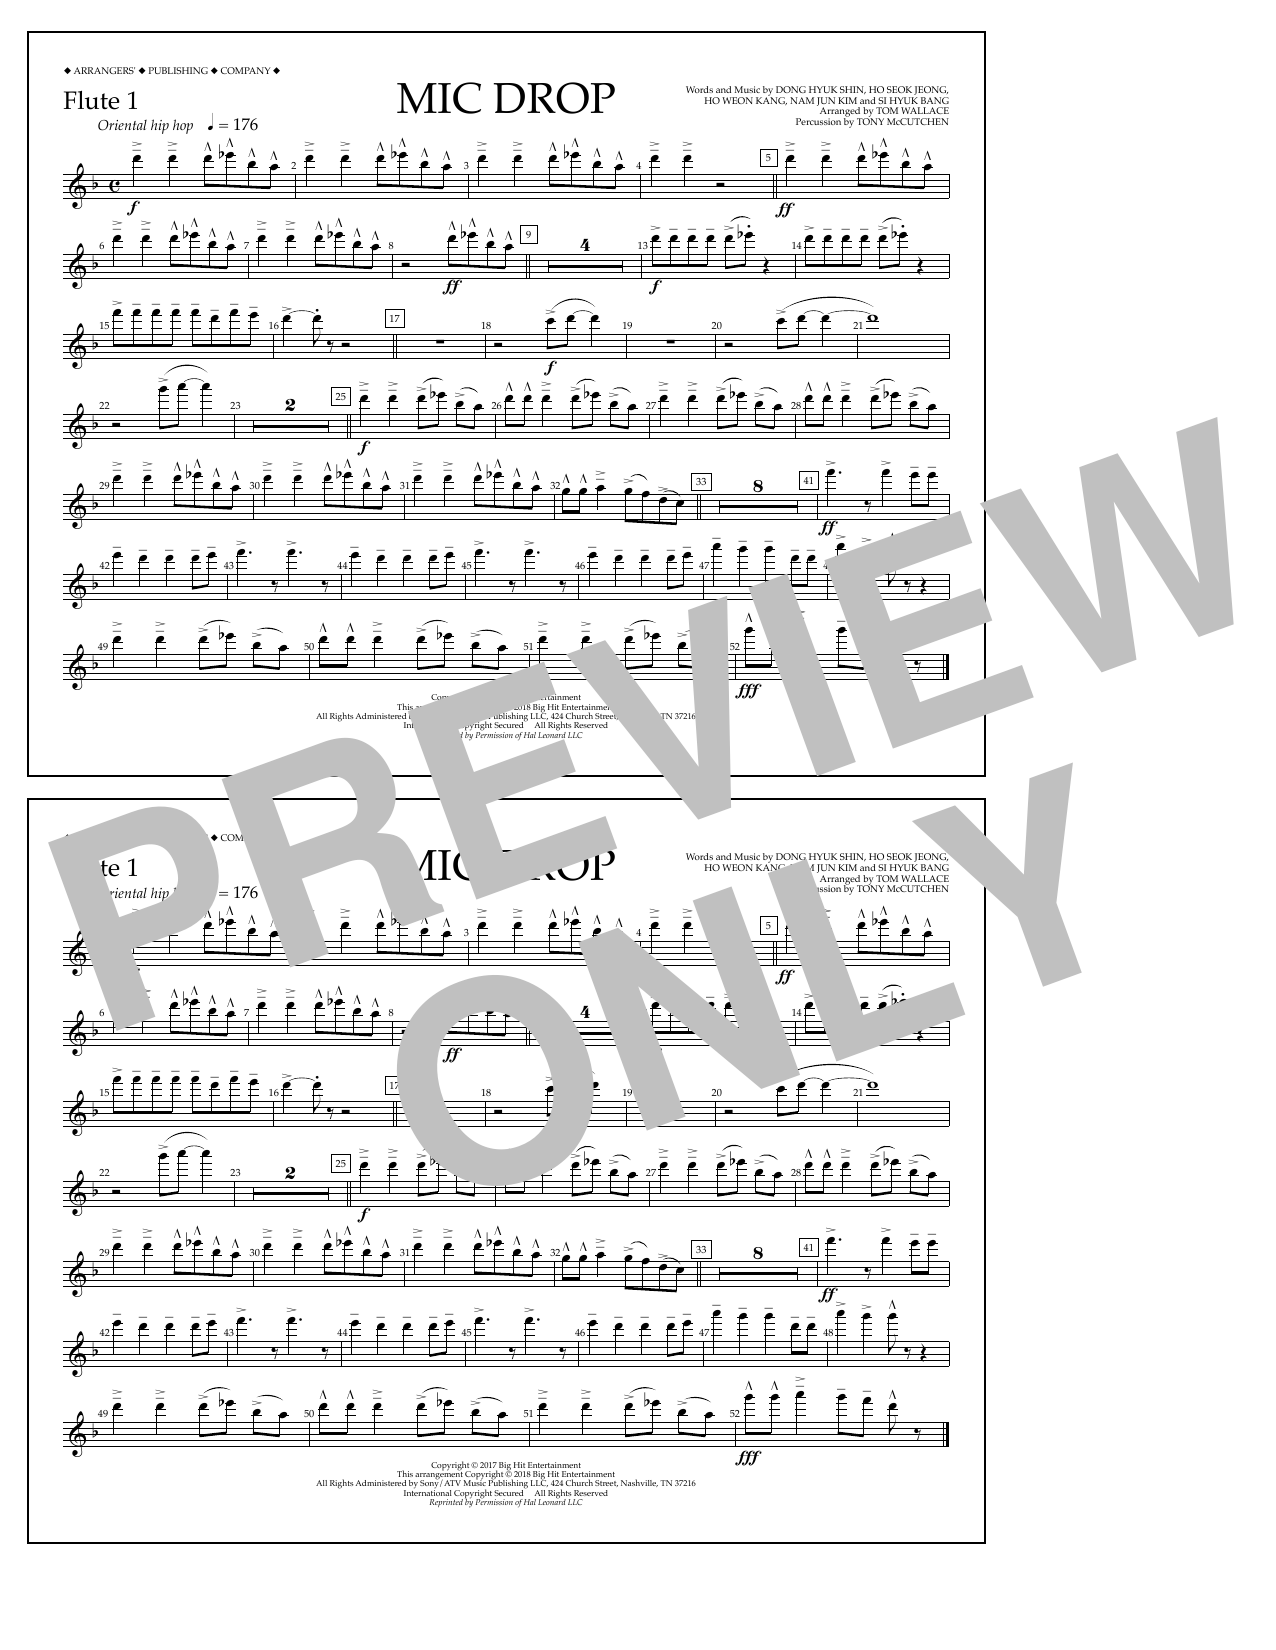 Download Tom Wallace 'Mic Drop - Flute 1' Digital Sheet Music Notes & Chords and start playing in minutes